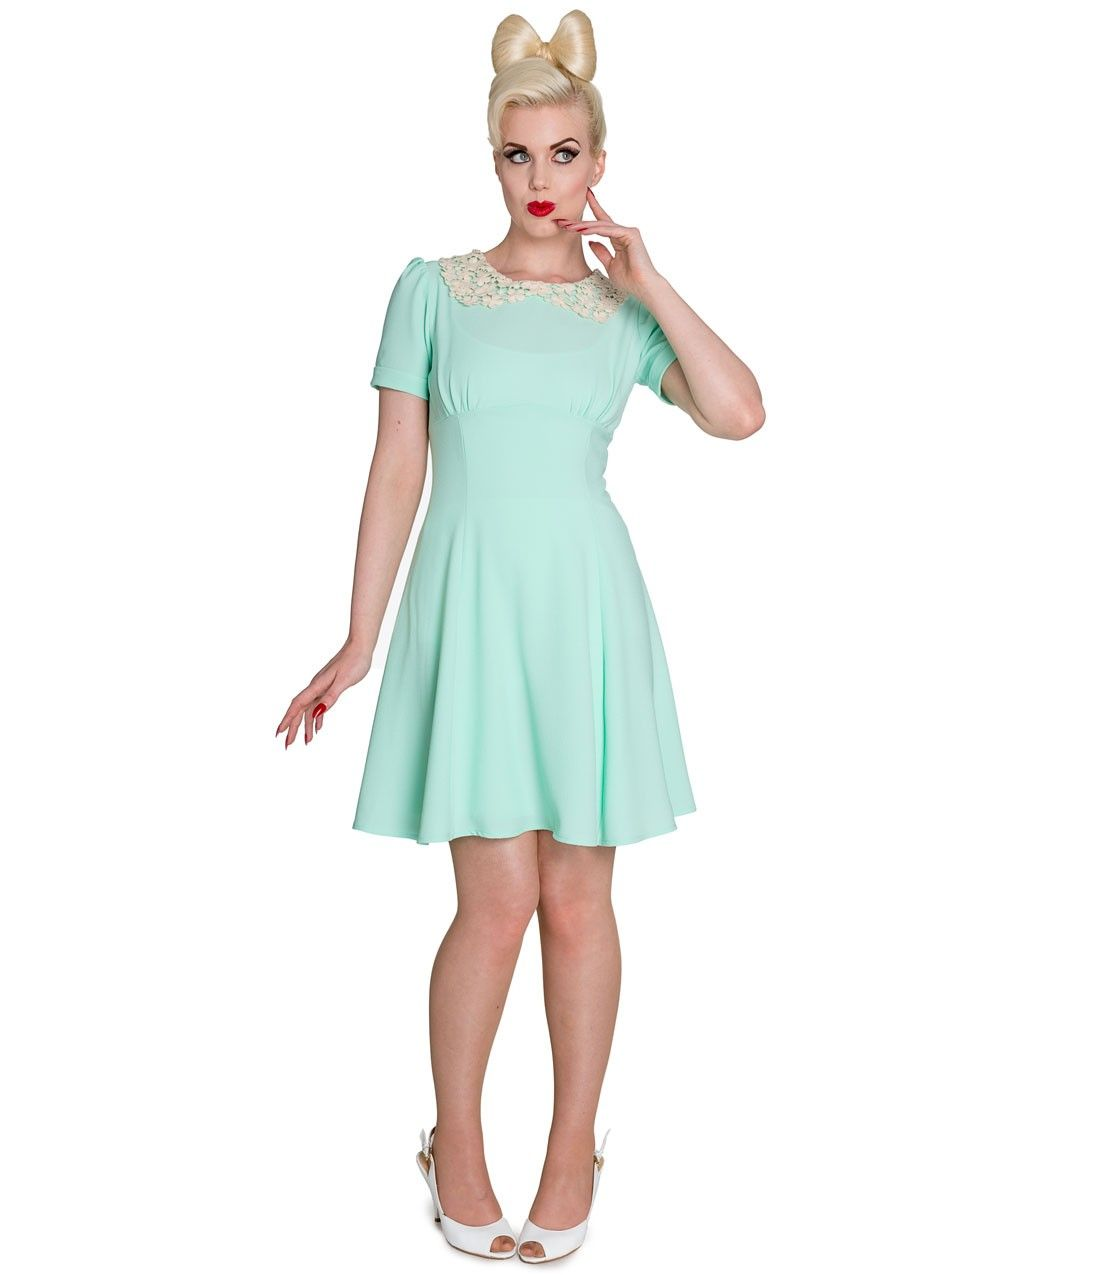 A vivacious #vintage inspired mint dress complete with a lace peter pan collar. #uniquevintage